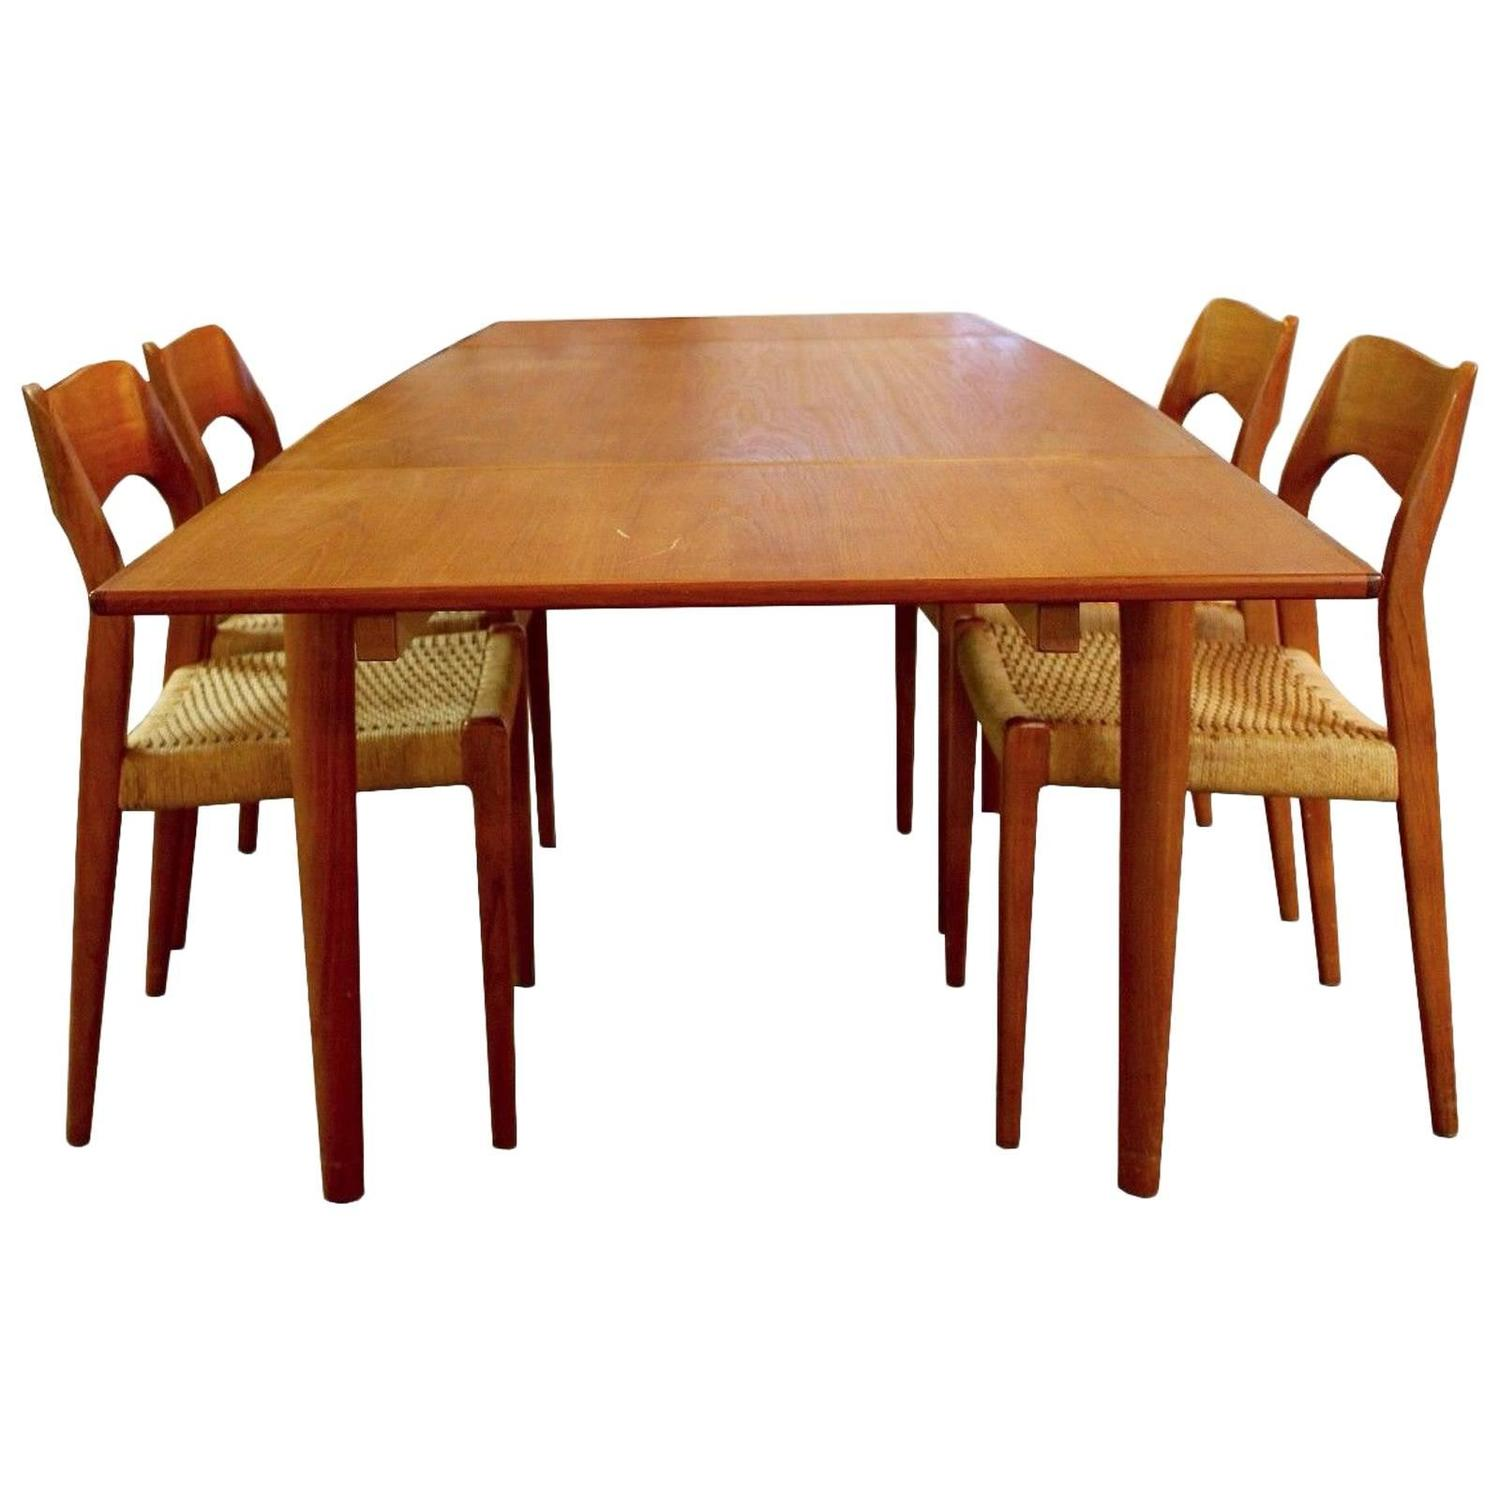 Modern Dining Table And Chairs Mid Century Modern Danish Teak Niels Moller Expandable